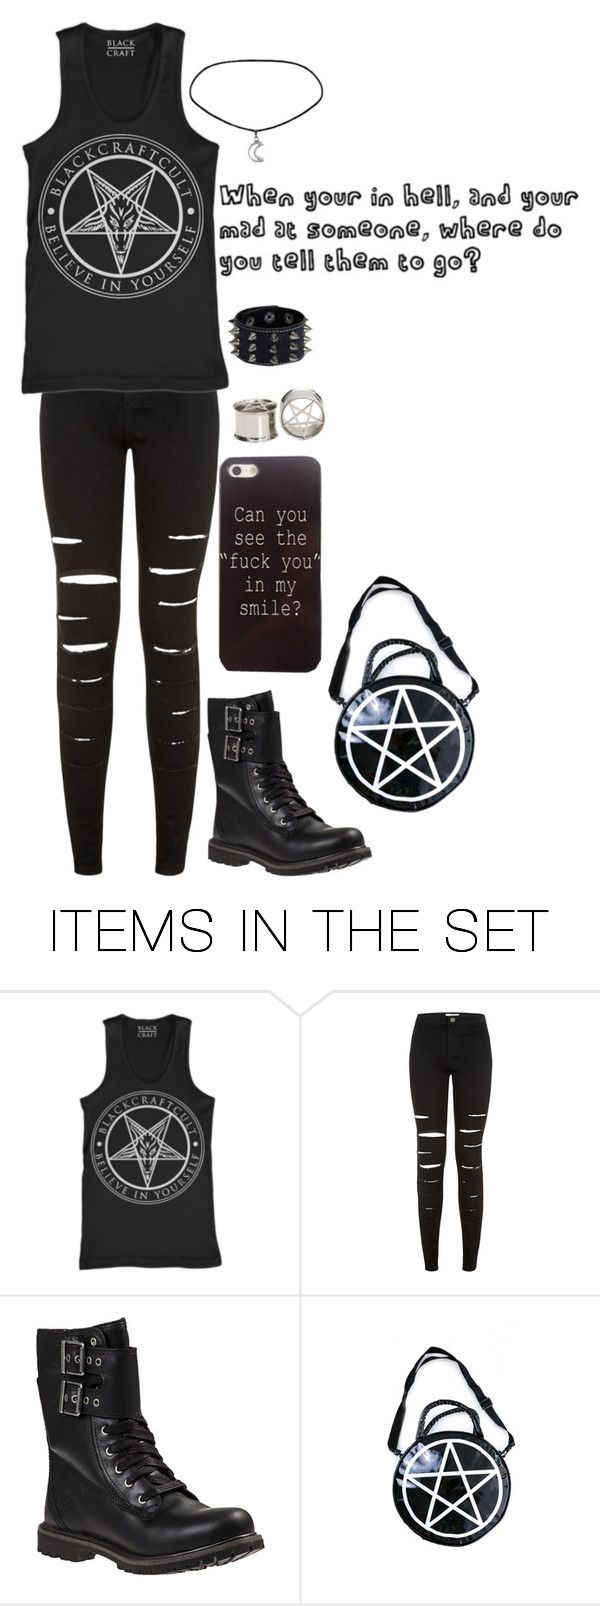 """When you're in Hell, and you're mad at someone, where do you tell them to go?"" by chuckygal-mp ❤ liked on Polyvore featuring art, black, Dark, quote and hell"